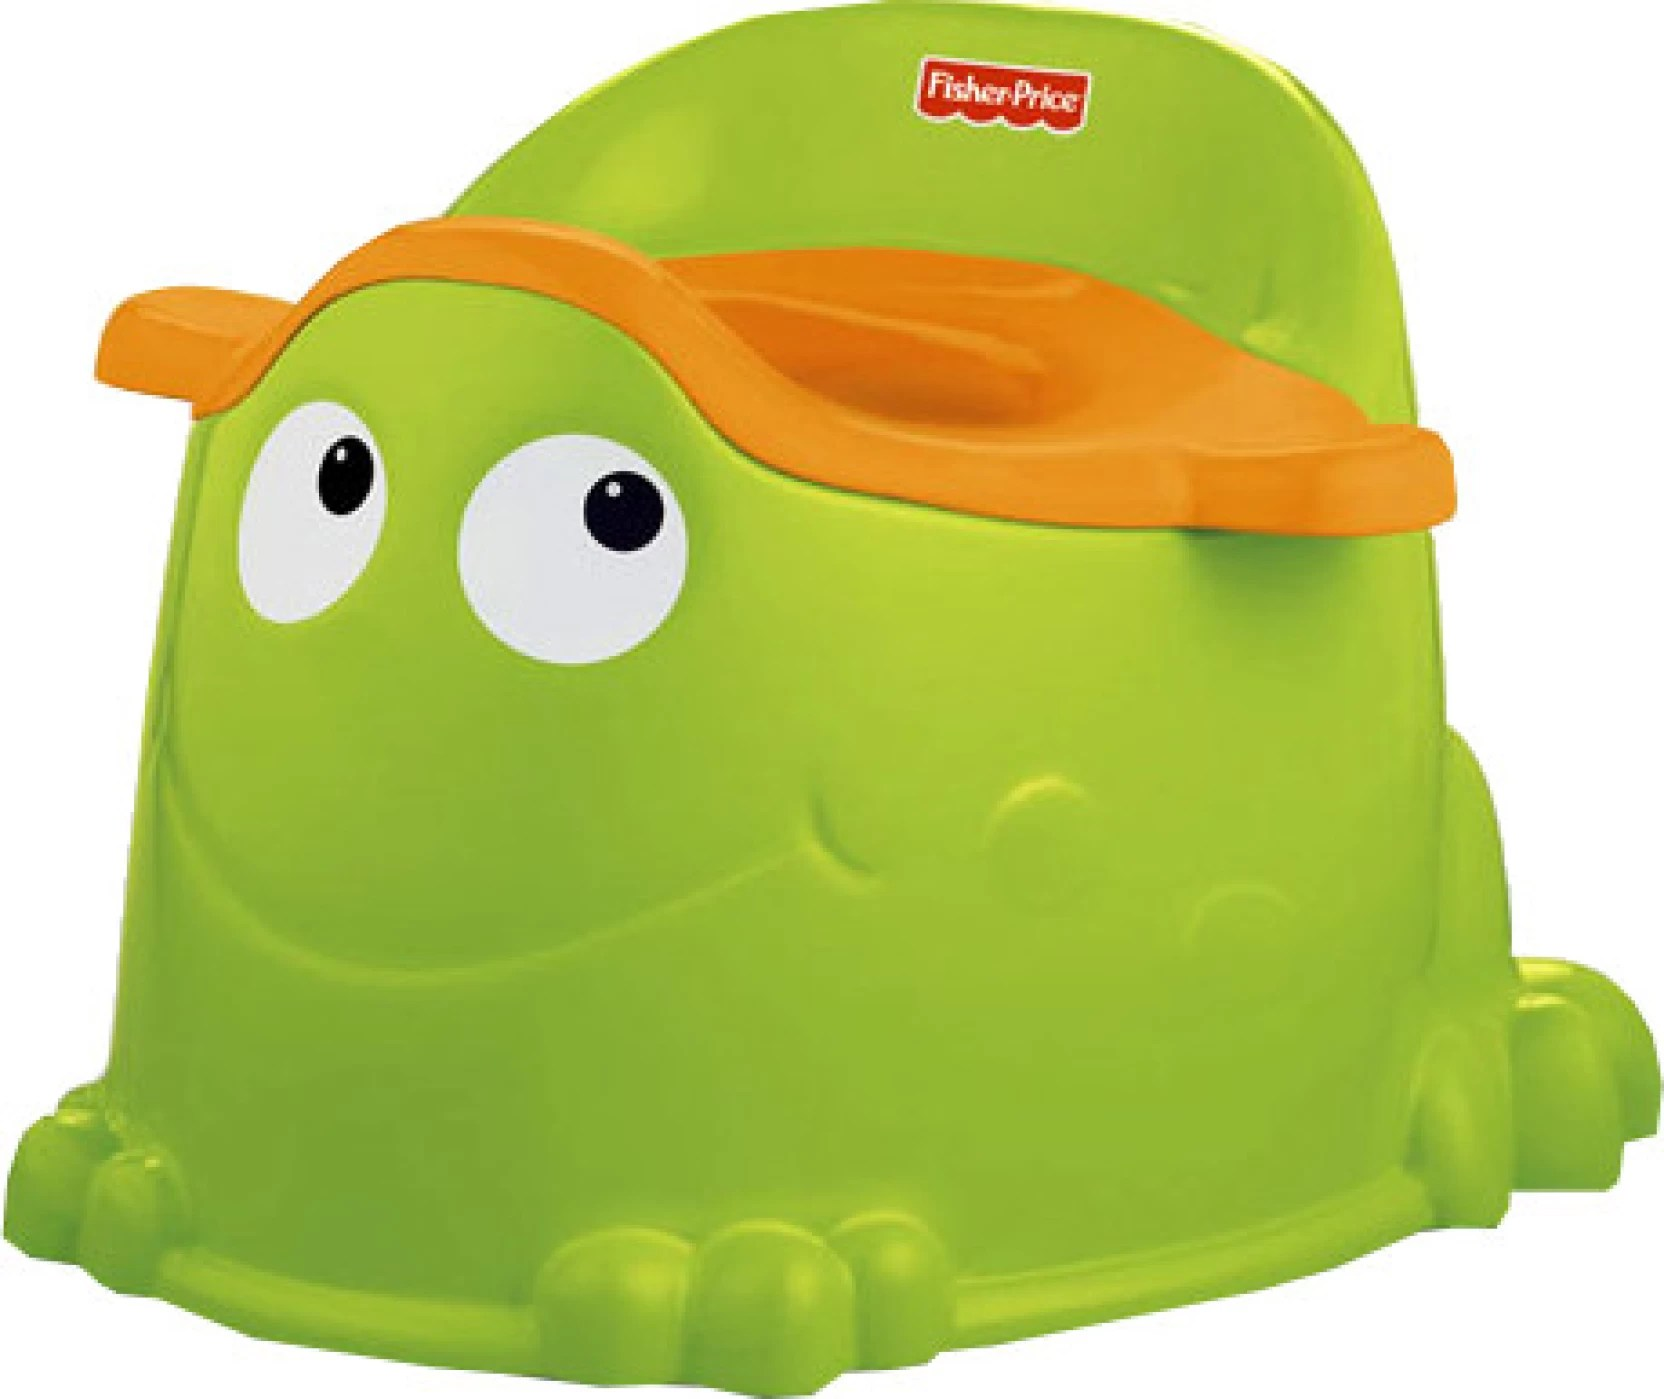 frog potty chair lounge covers for sale fisher price froggy seat buy baby care